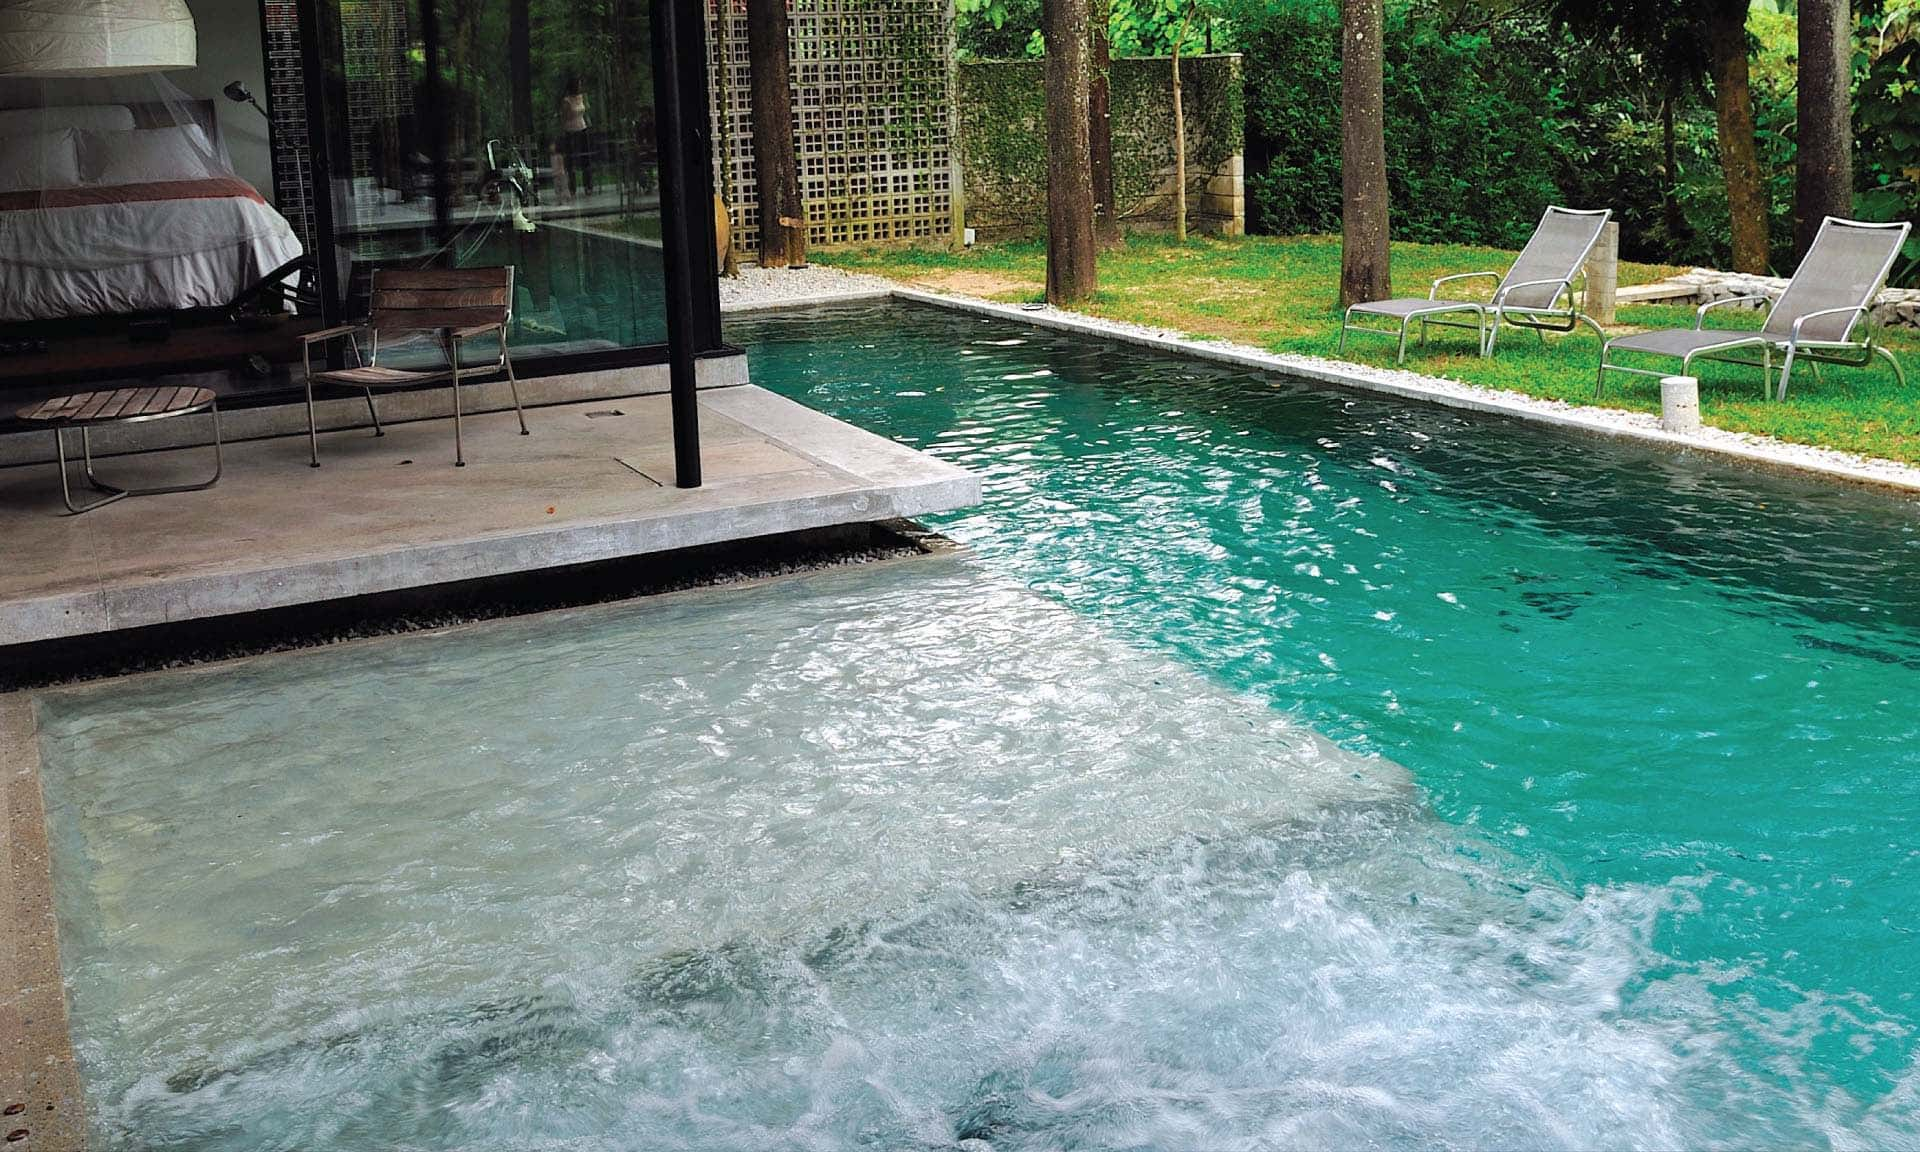 Jacuzzi Pool Service Design And Built Home And Commercial Pool Spa And Fountain